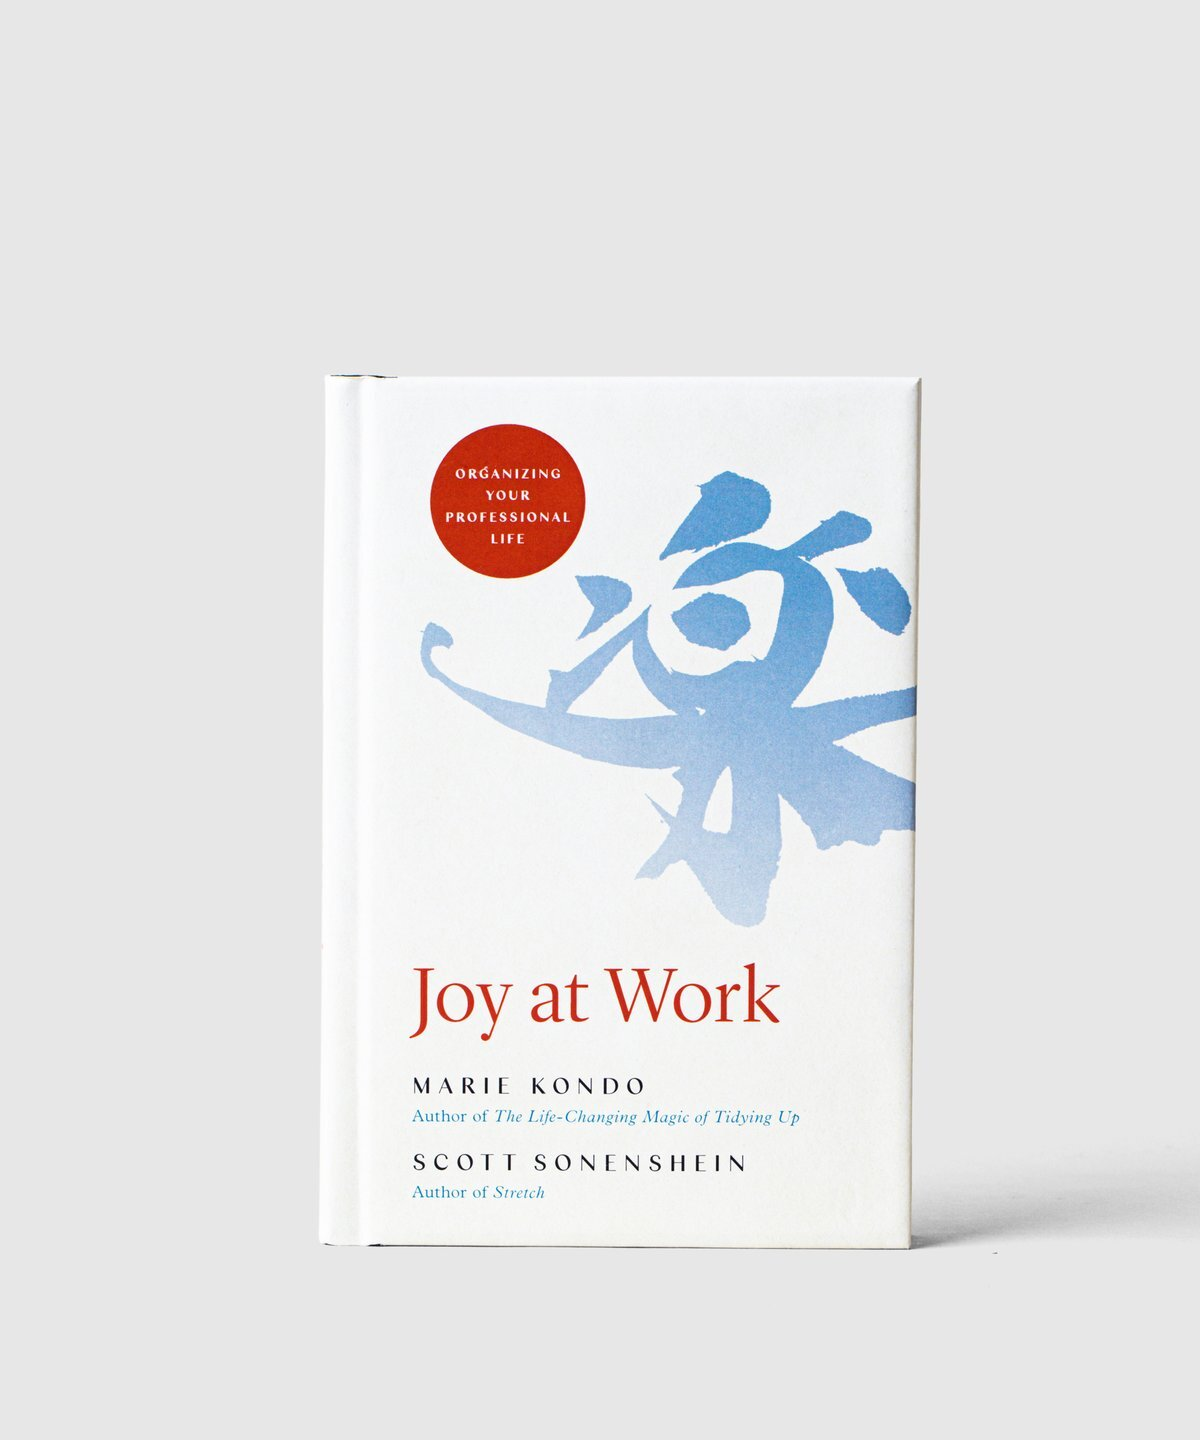 Helen Youn Book Review Joy At Work Organizing Your Professional Life